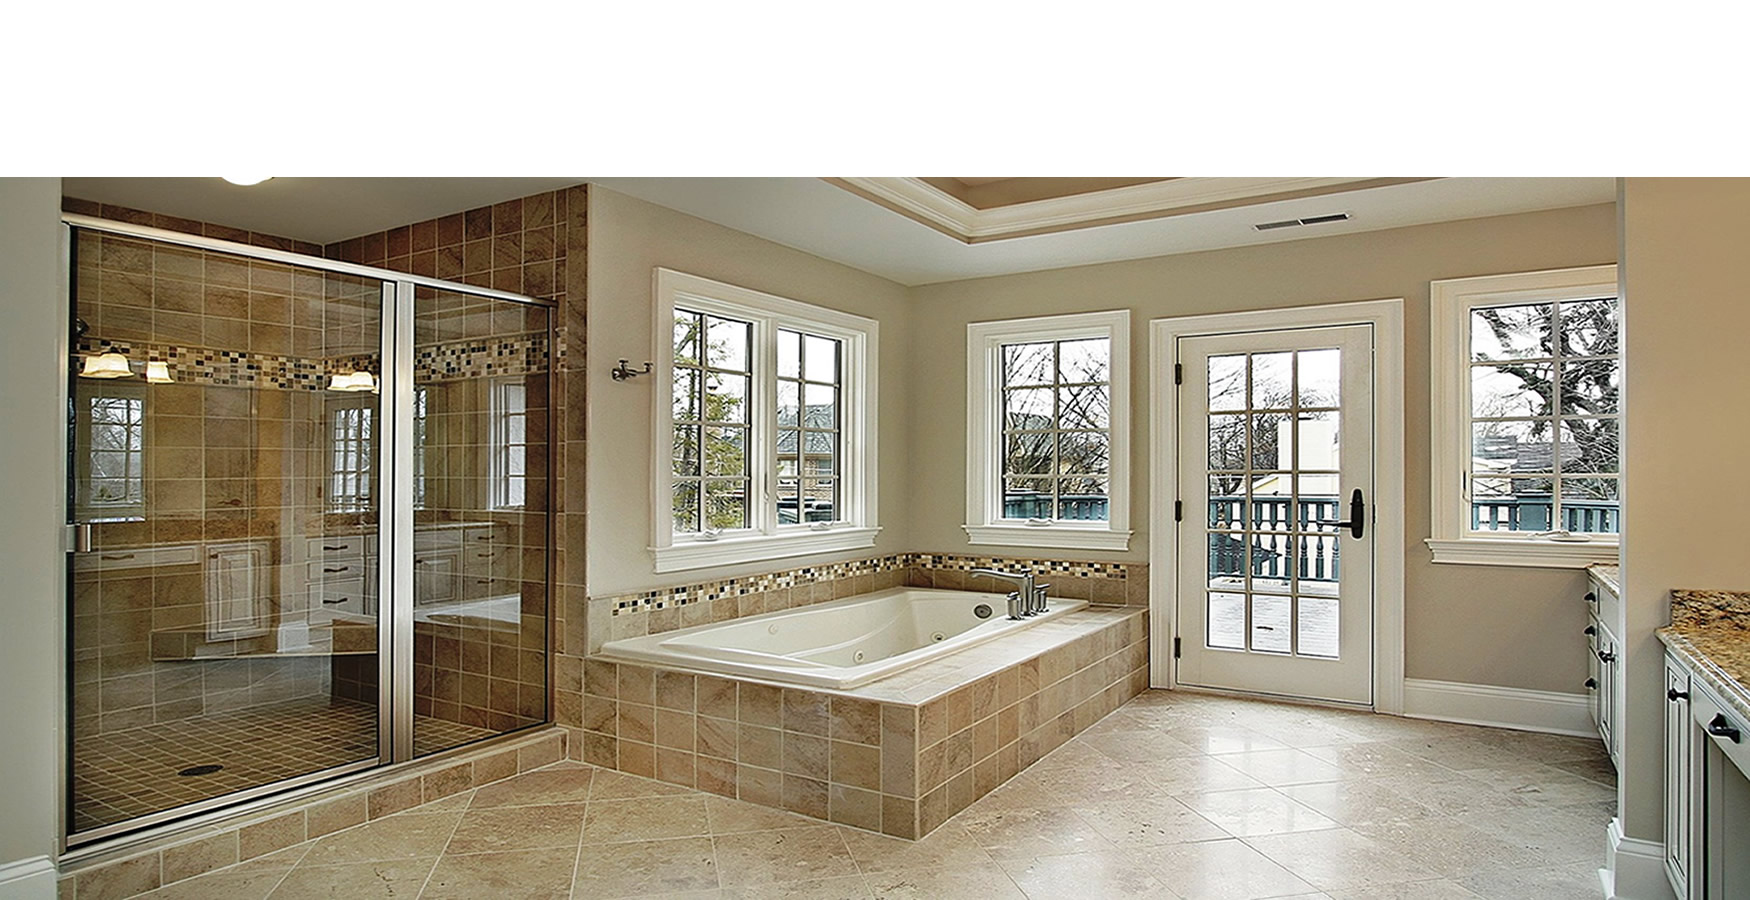 DO Builders A Quality General Contractor In San Diego CA - Bathroom remodeling san diego ca